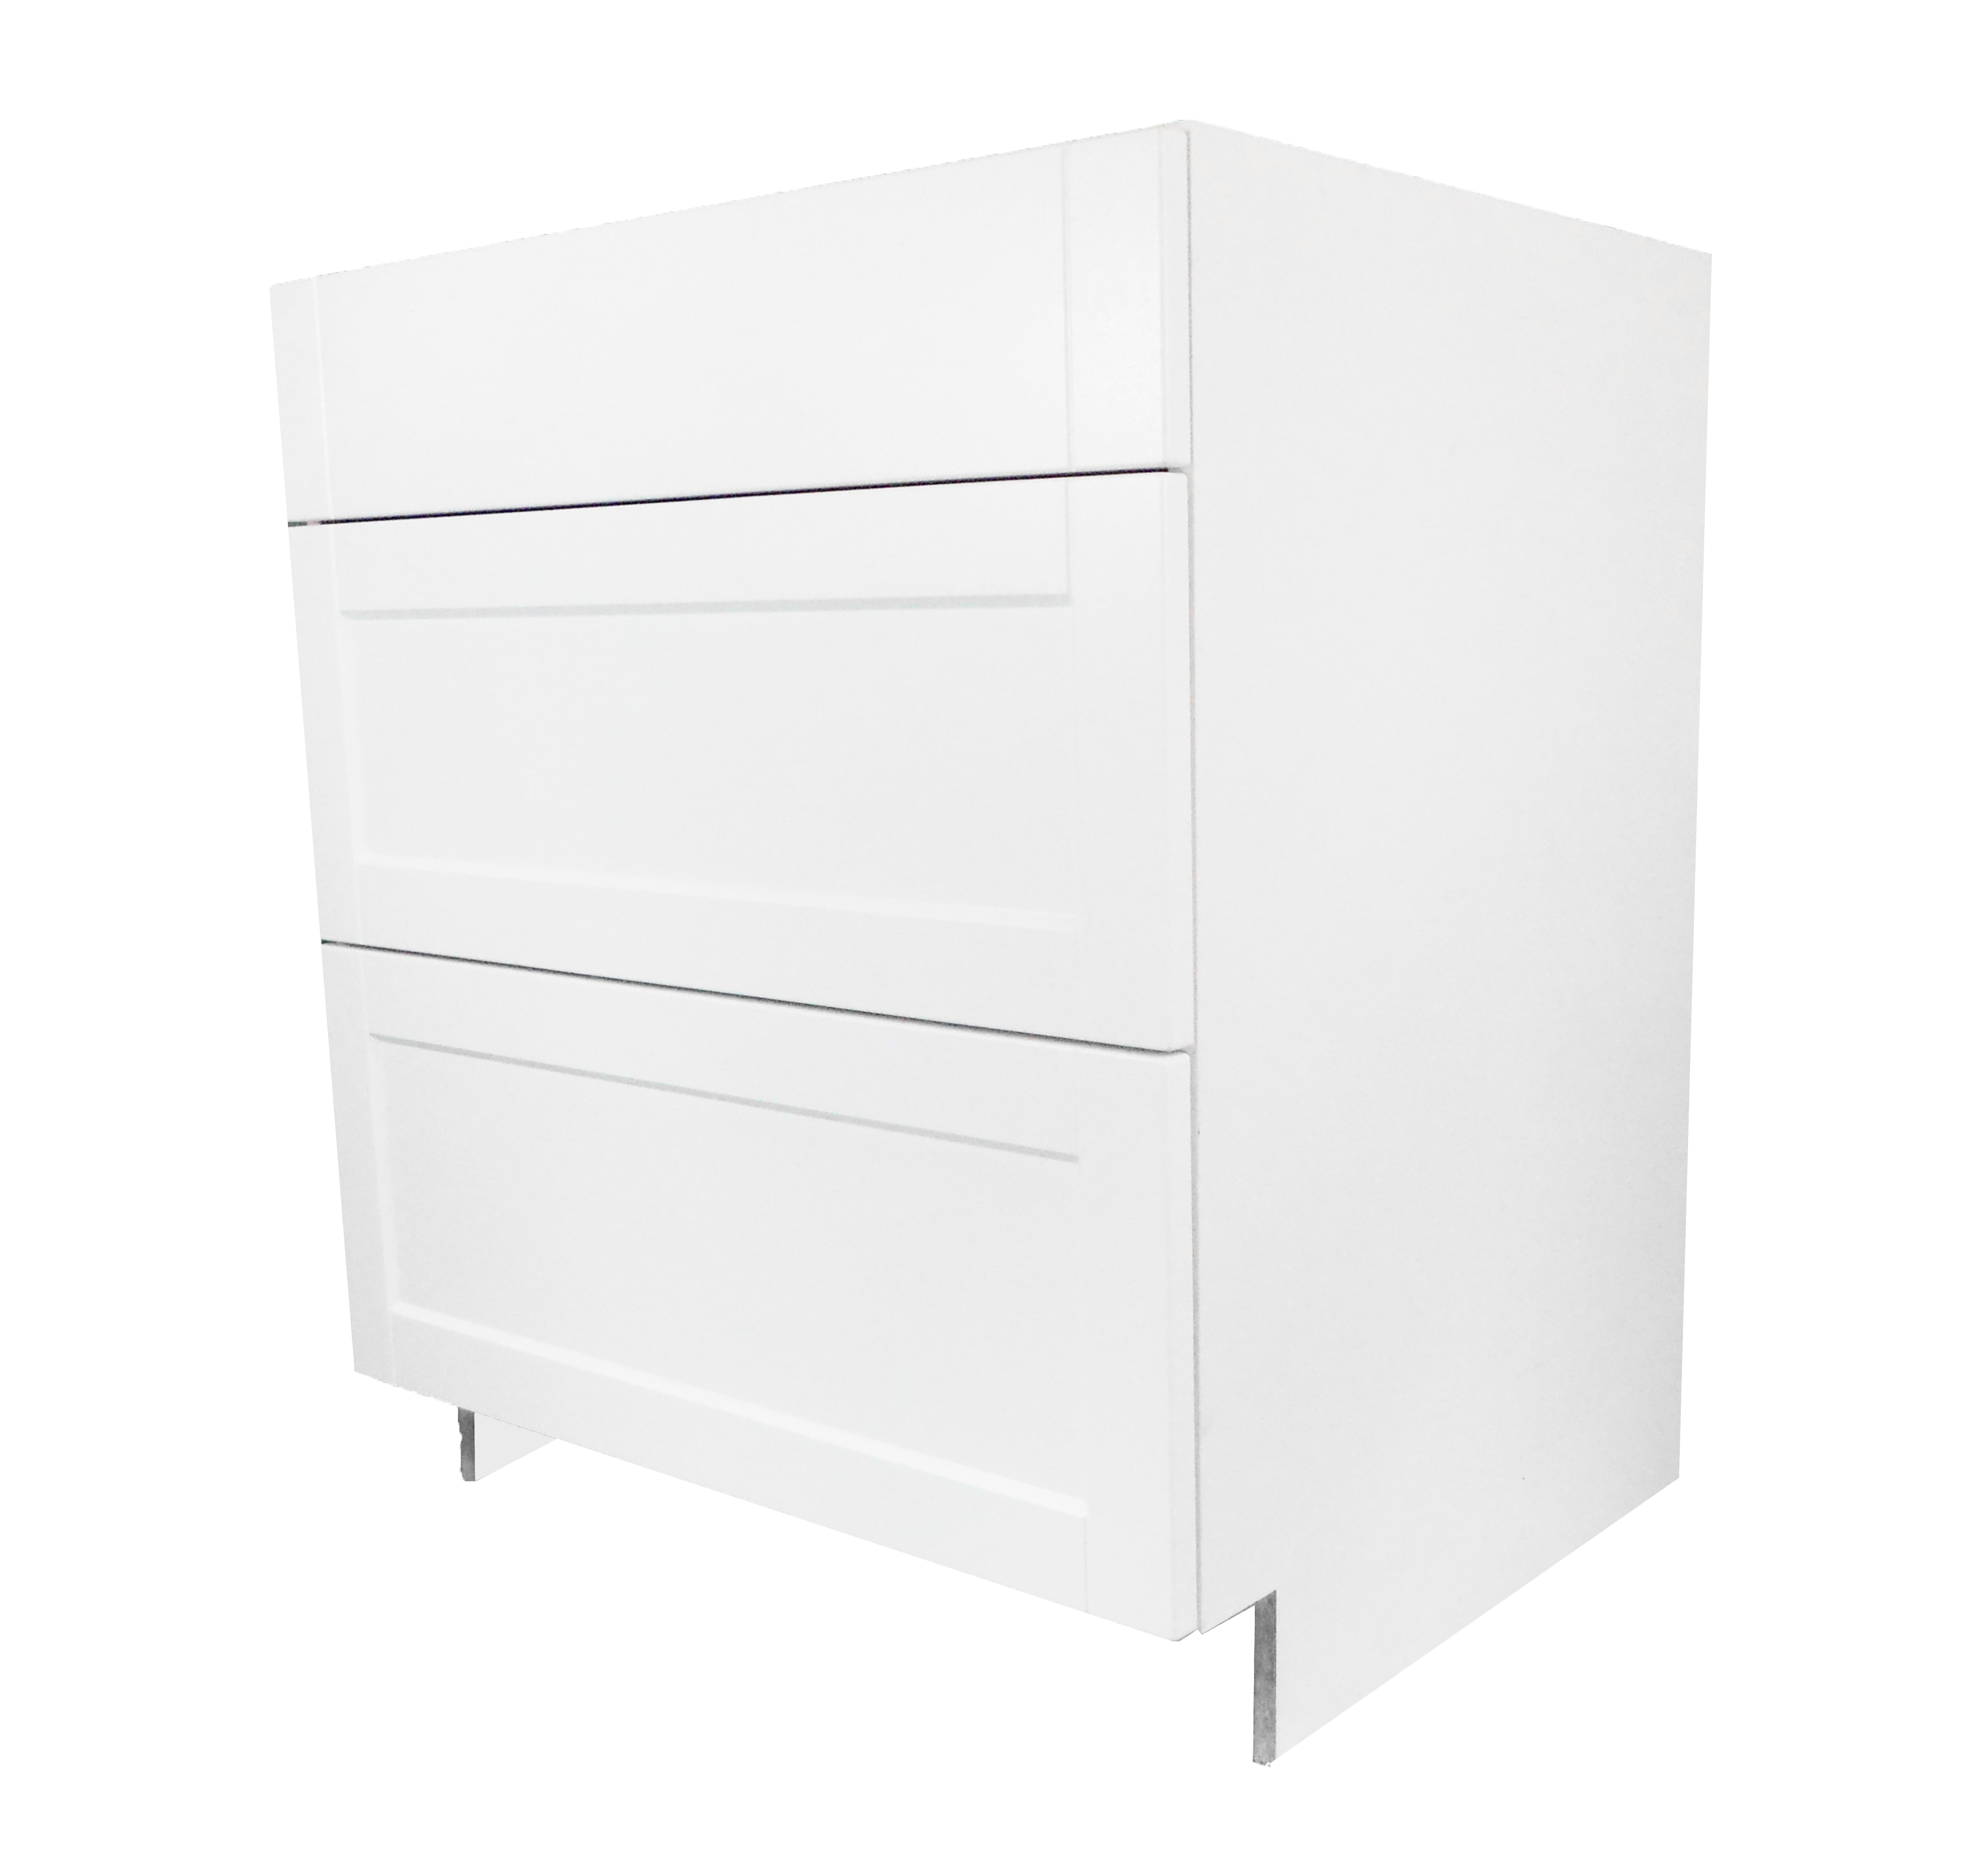 Base Cabinet 3 Drawer Bank / Flat Panel White / 30 Solaire White 0